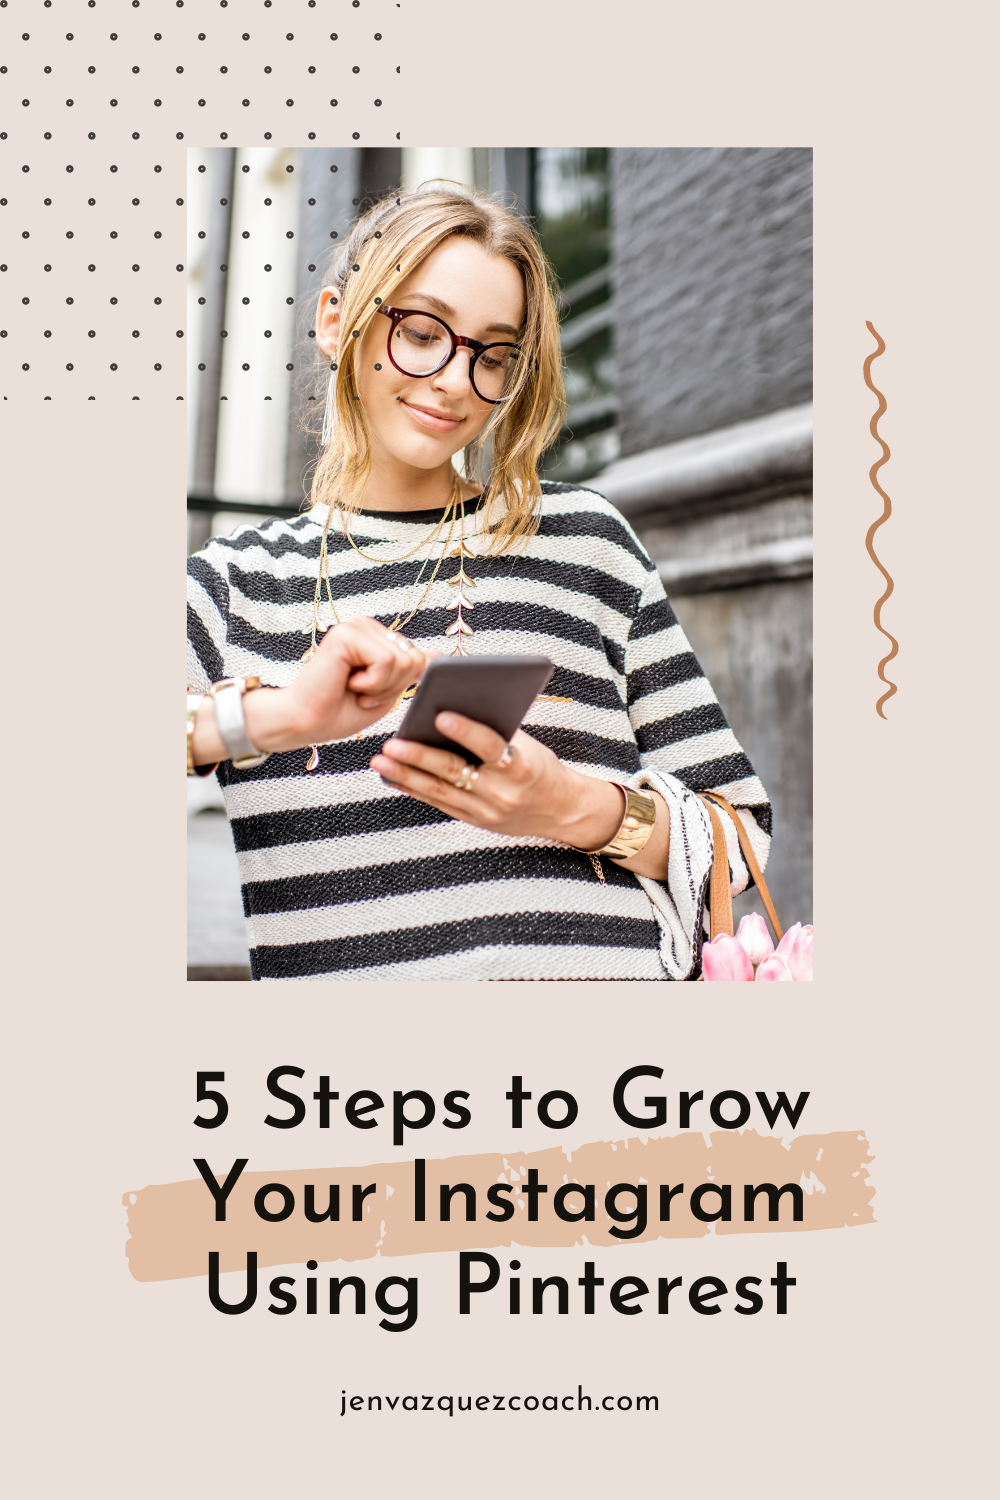 5 Steps to Grow Your Instagram Using Pinterest7